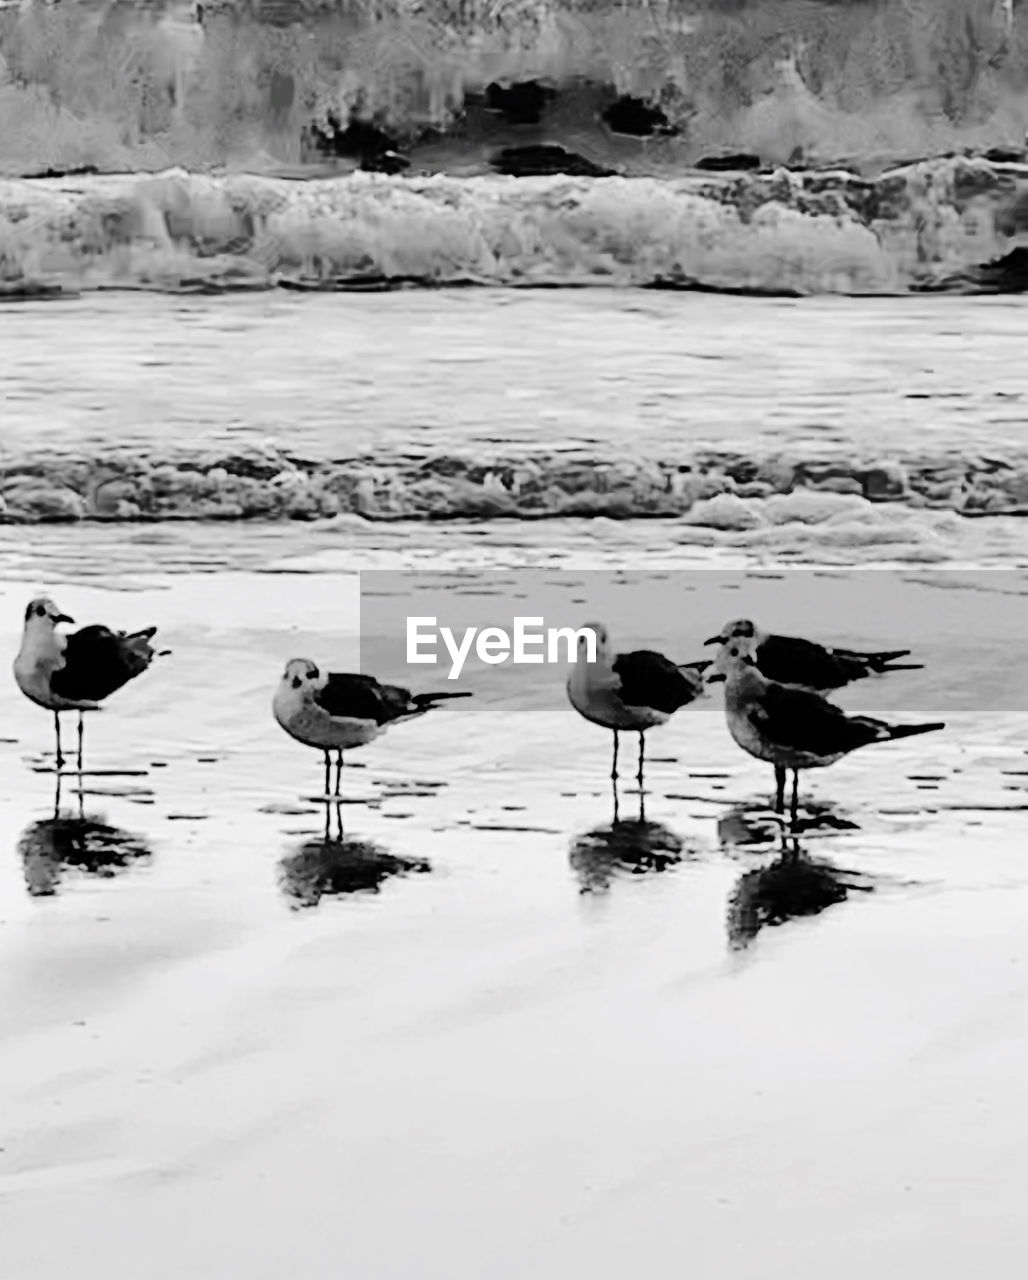 bird, snow, cold temperature, winter, group of animals, animal themes, animals in the wild, animal wildlife, animal, water, vertebrate, beauty in nature, nature, no people, scenics - nature, frozen, day, lake, flock of birds